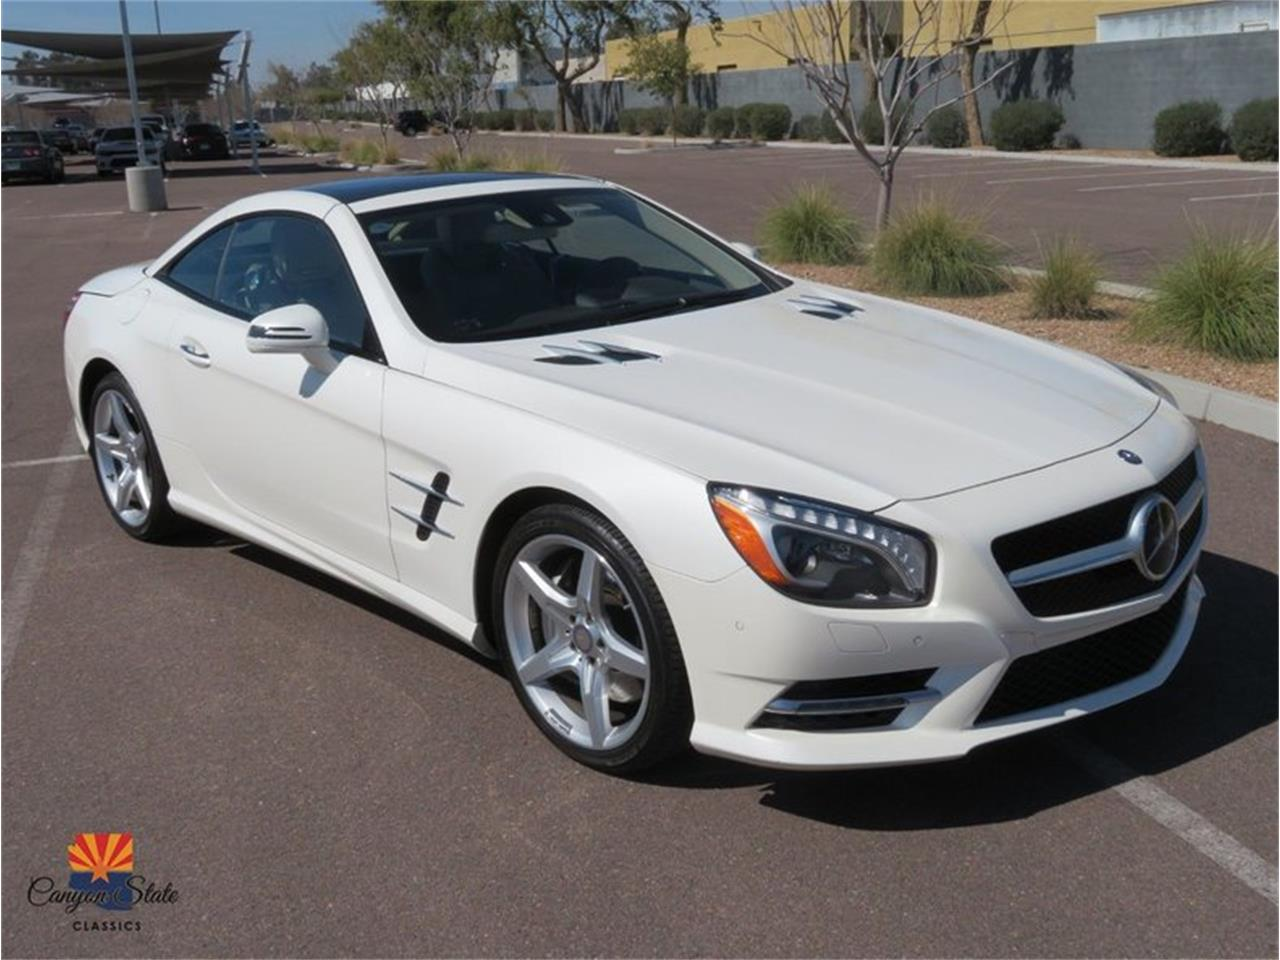 2013 Mercedes-Benz SL-Class for sale in Tempe, AZ – photo 67